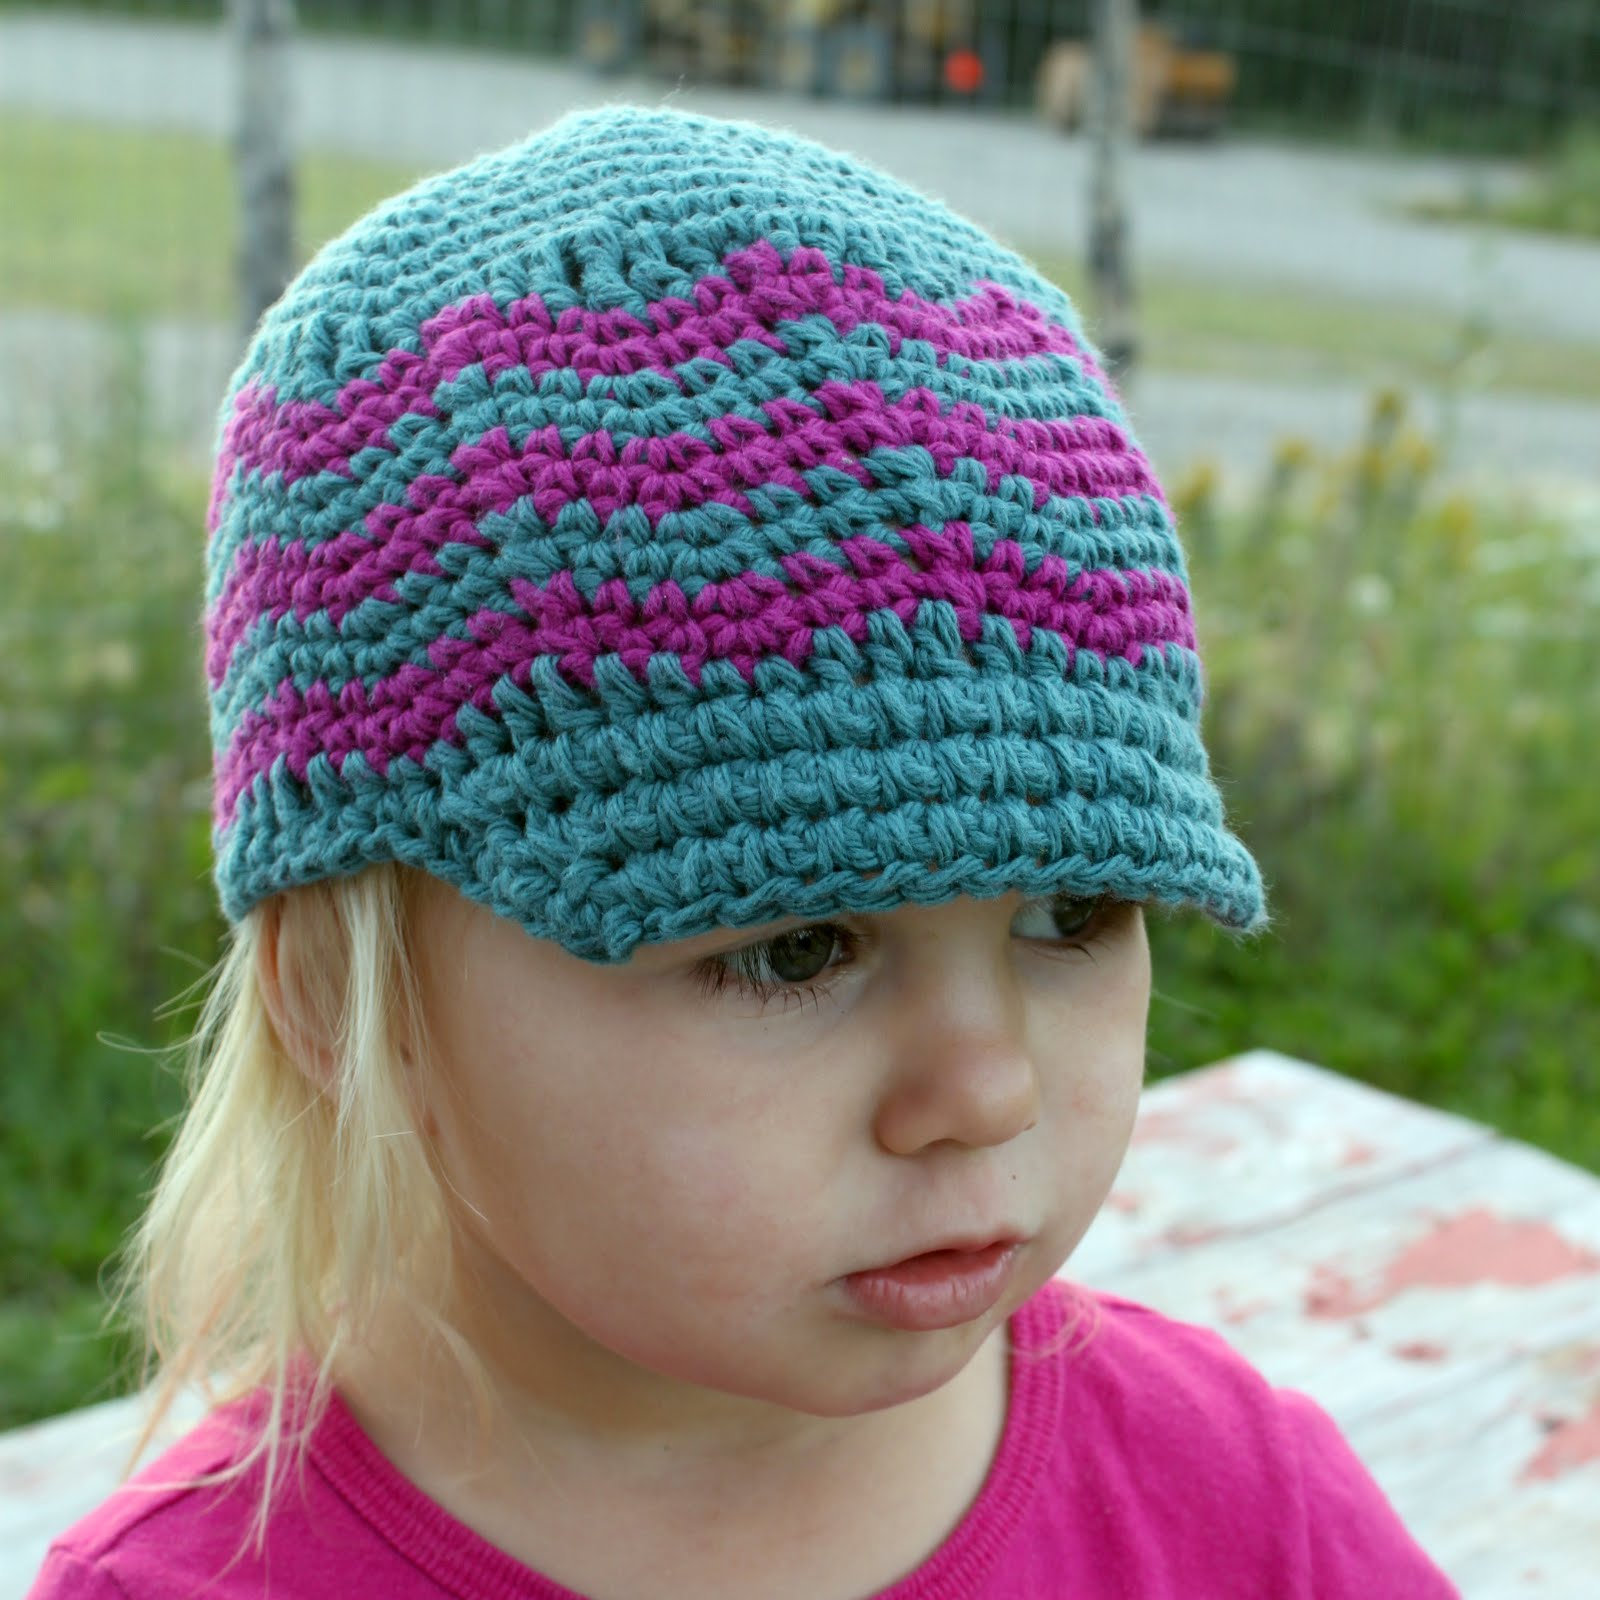 Free Pattern Crochet Wide Brim Hat : BRIMMED HAT CROCHET PATTERN Crochet Patterns